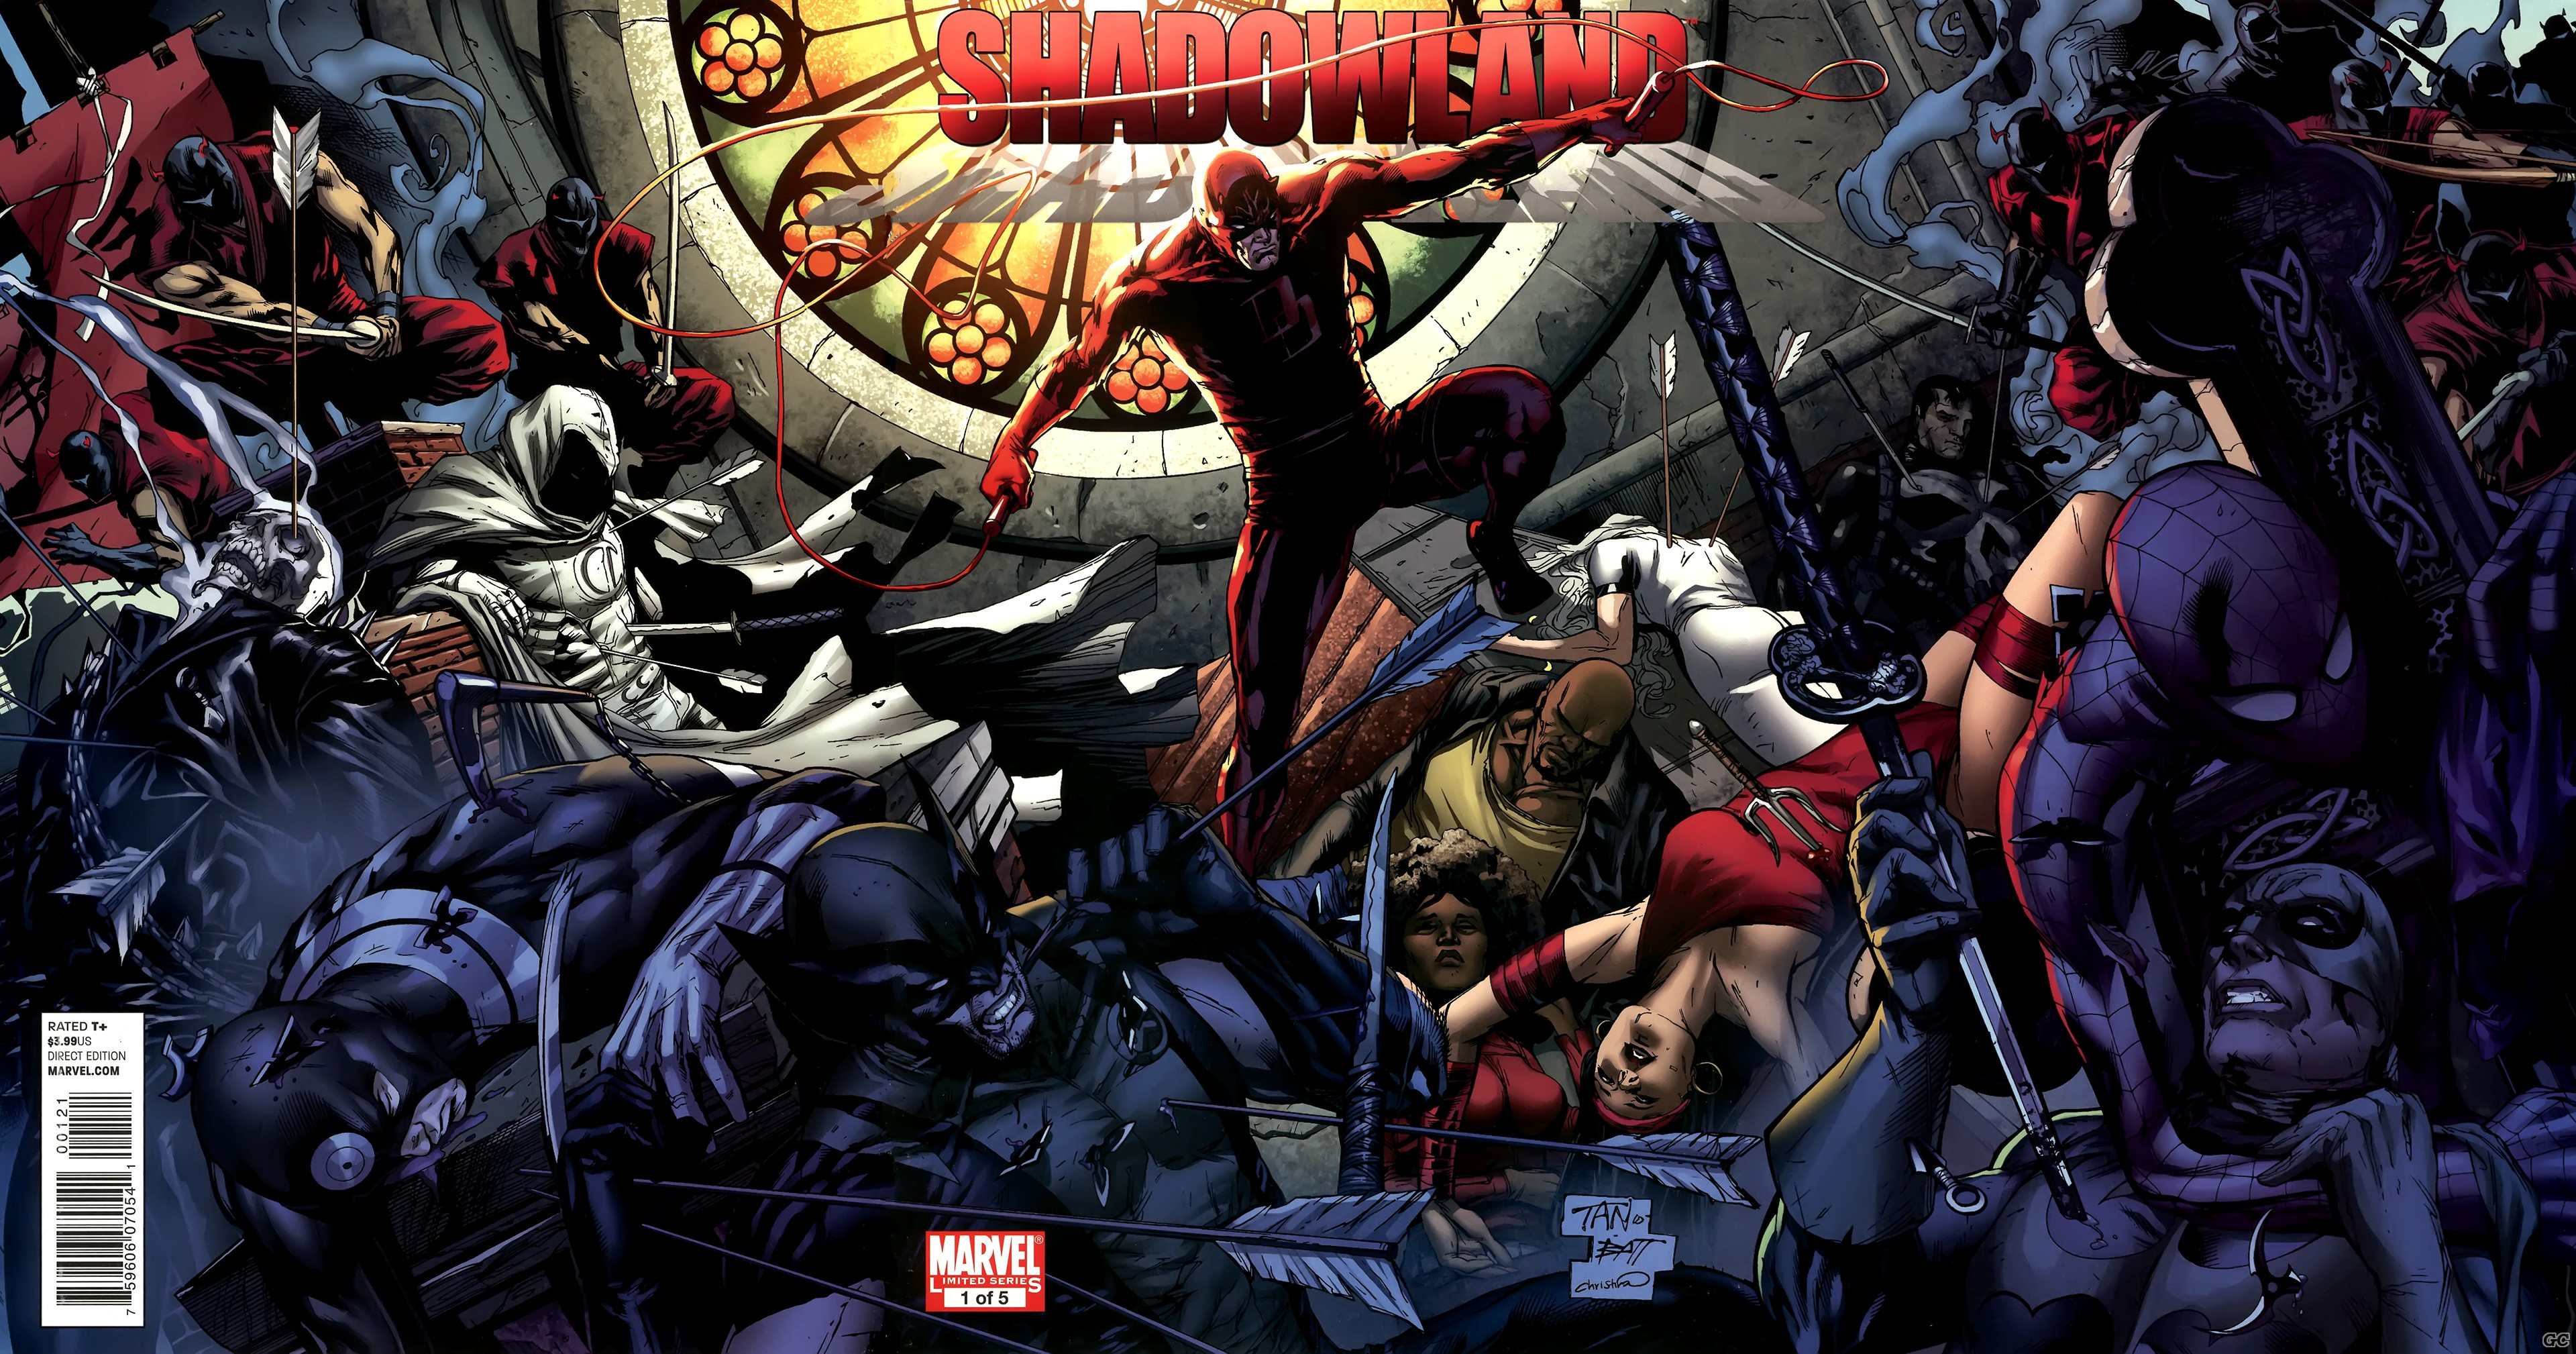 DAREDEVIL SHADOWLAND (ANDY DIGGLE-BILLY TAN)